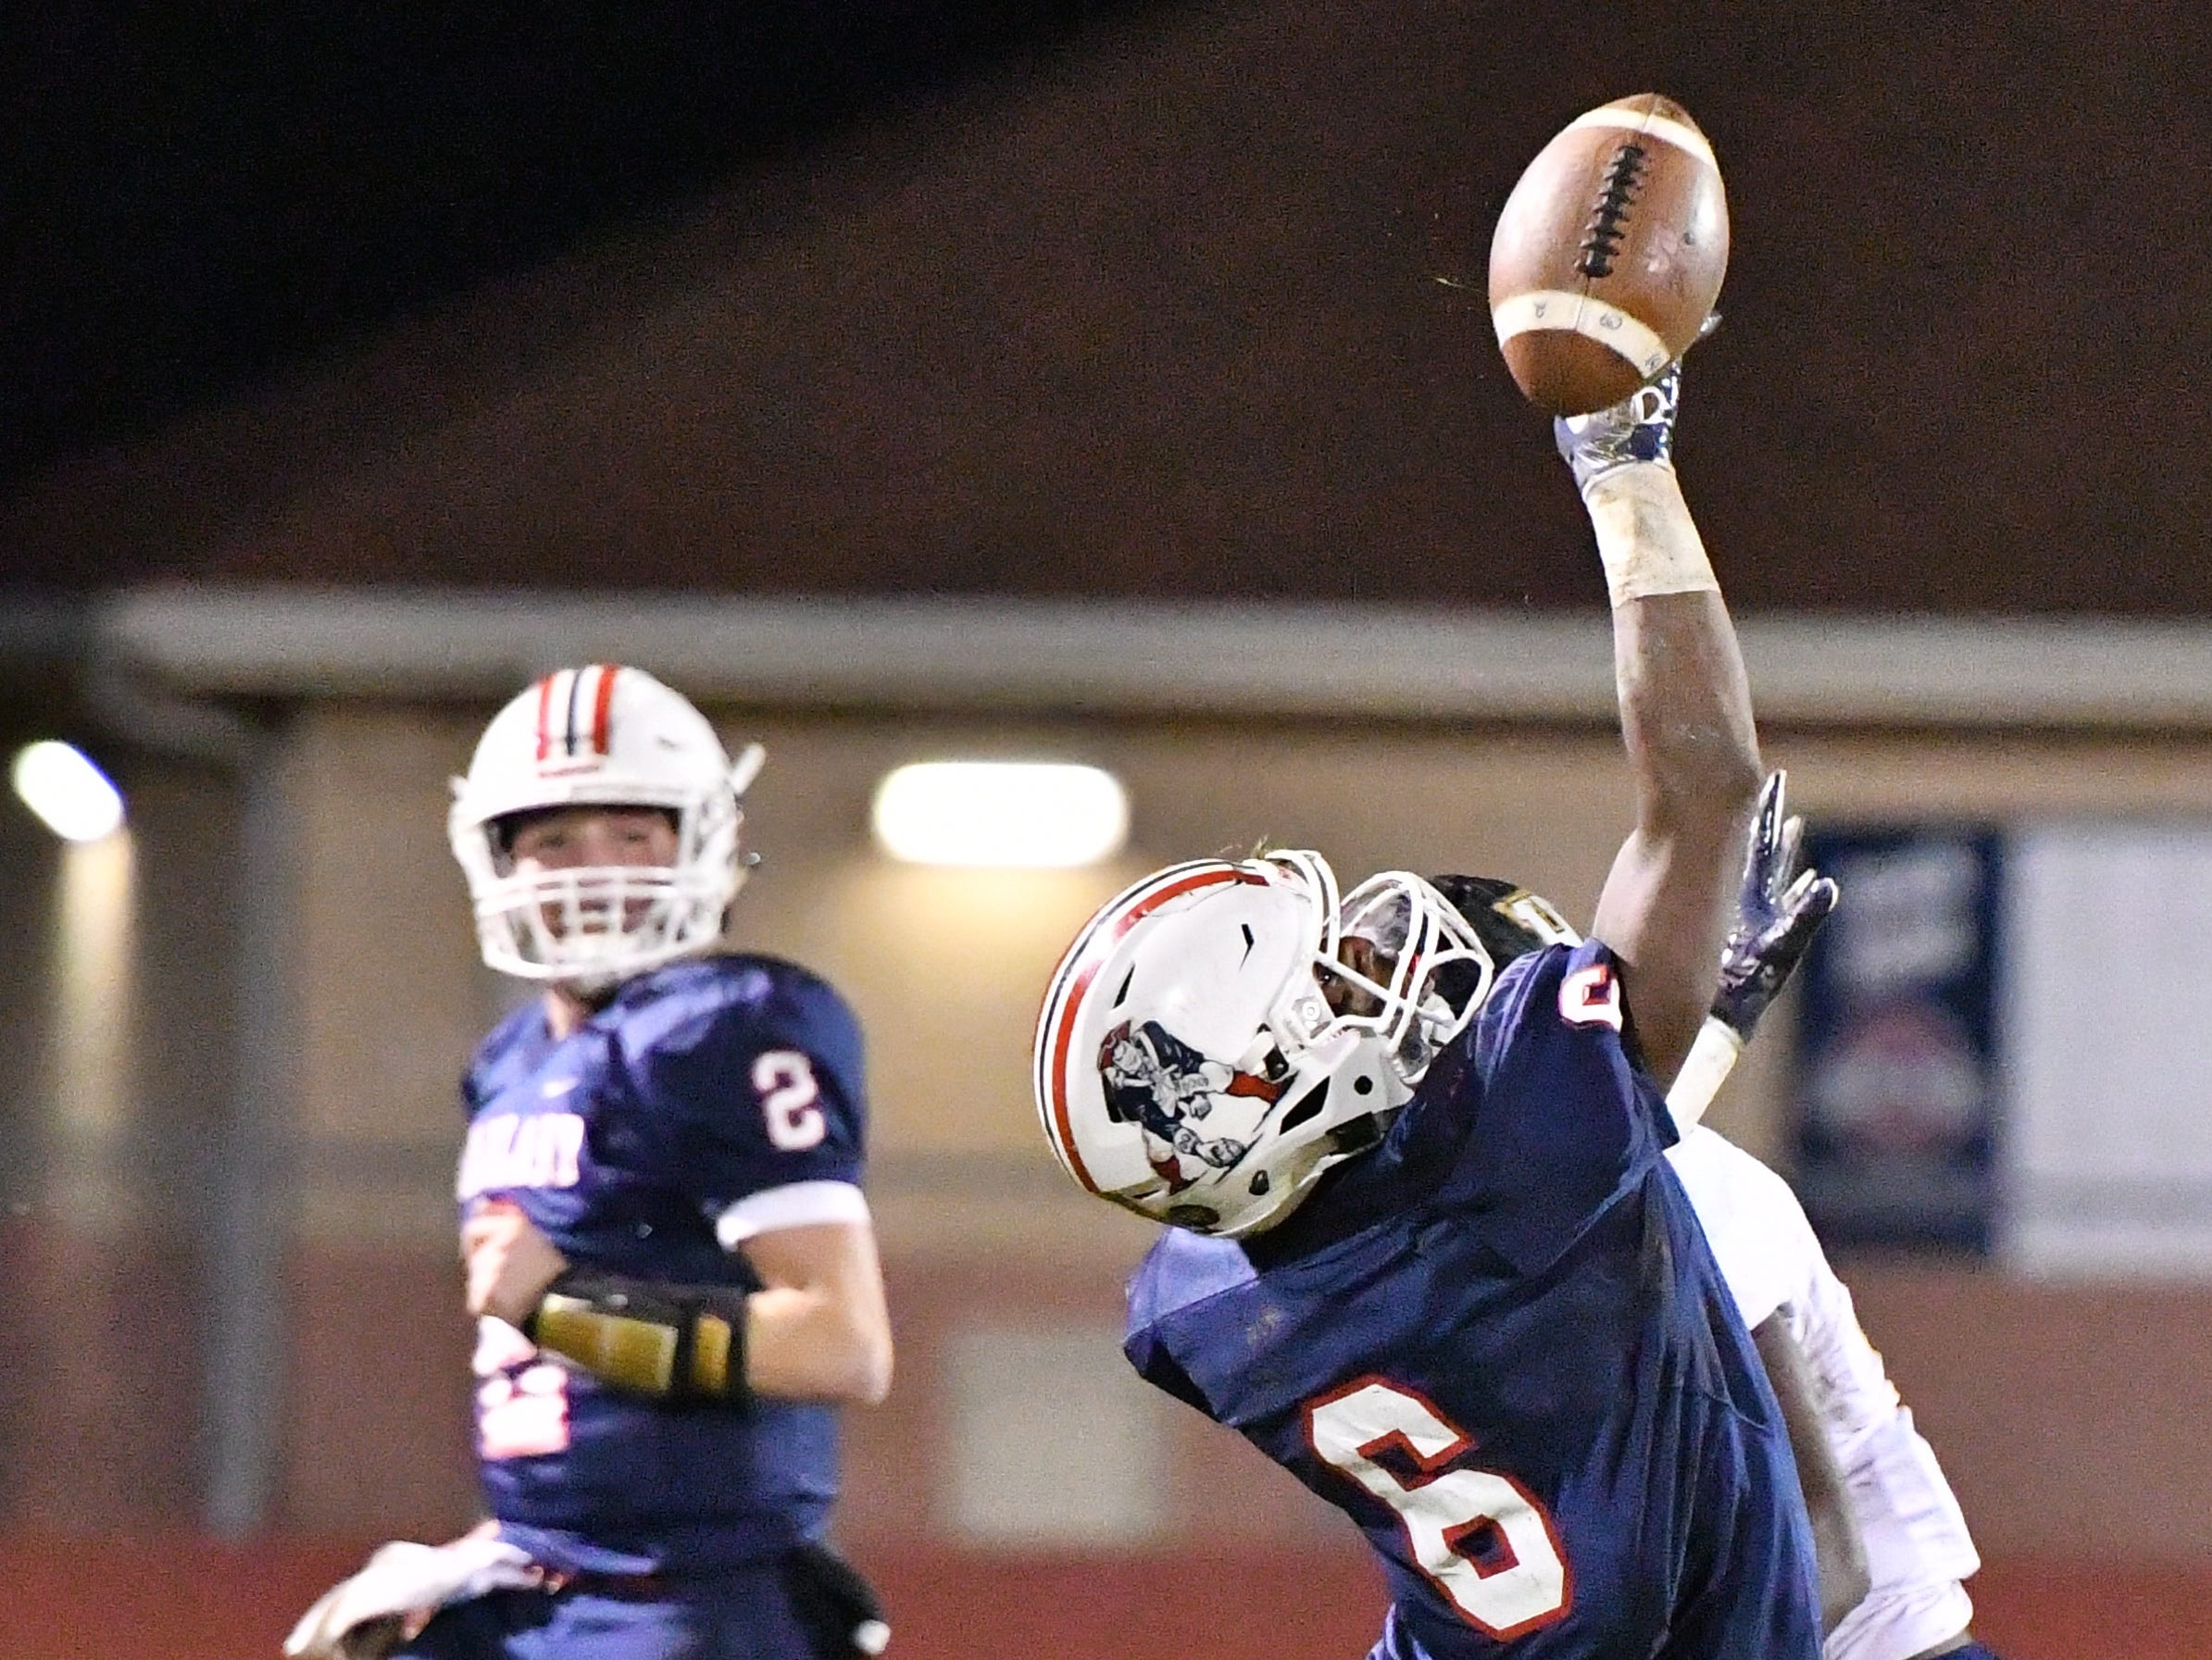 Oakland's Justin Jefferson stretches for a pass as quarterback Brevin Linnell looks on Friday night against Hendersonville.